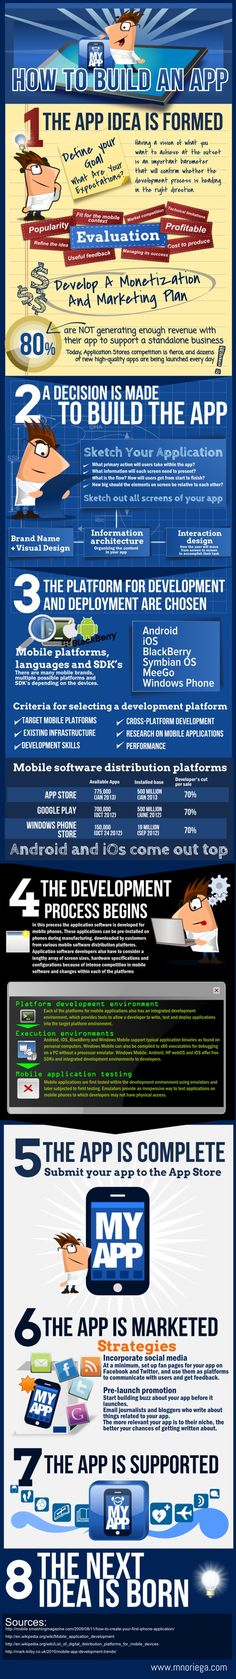 How to build an APP #infografia #infographic #software